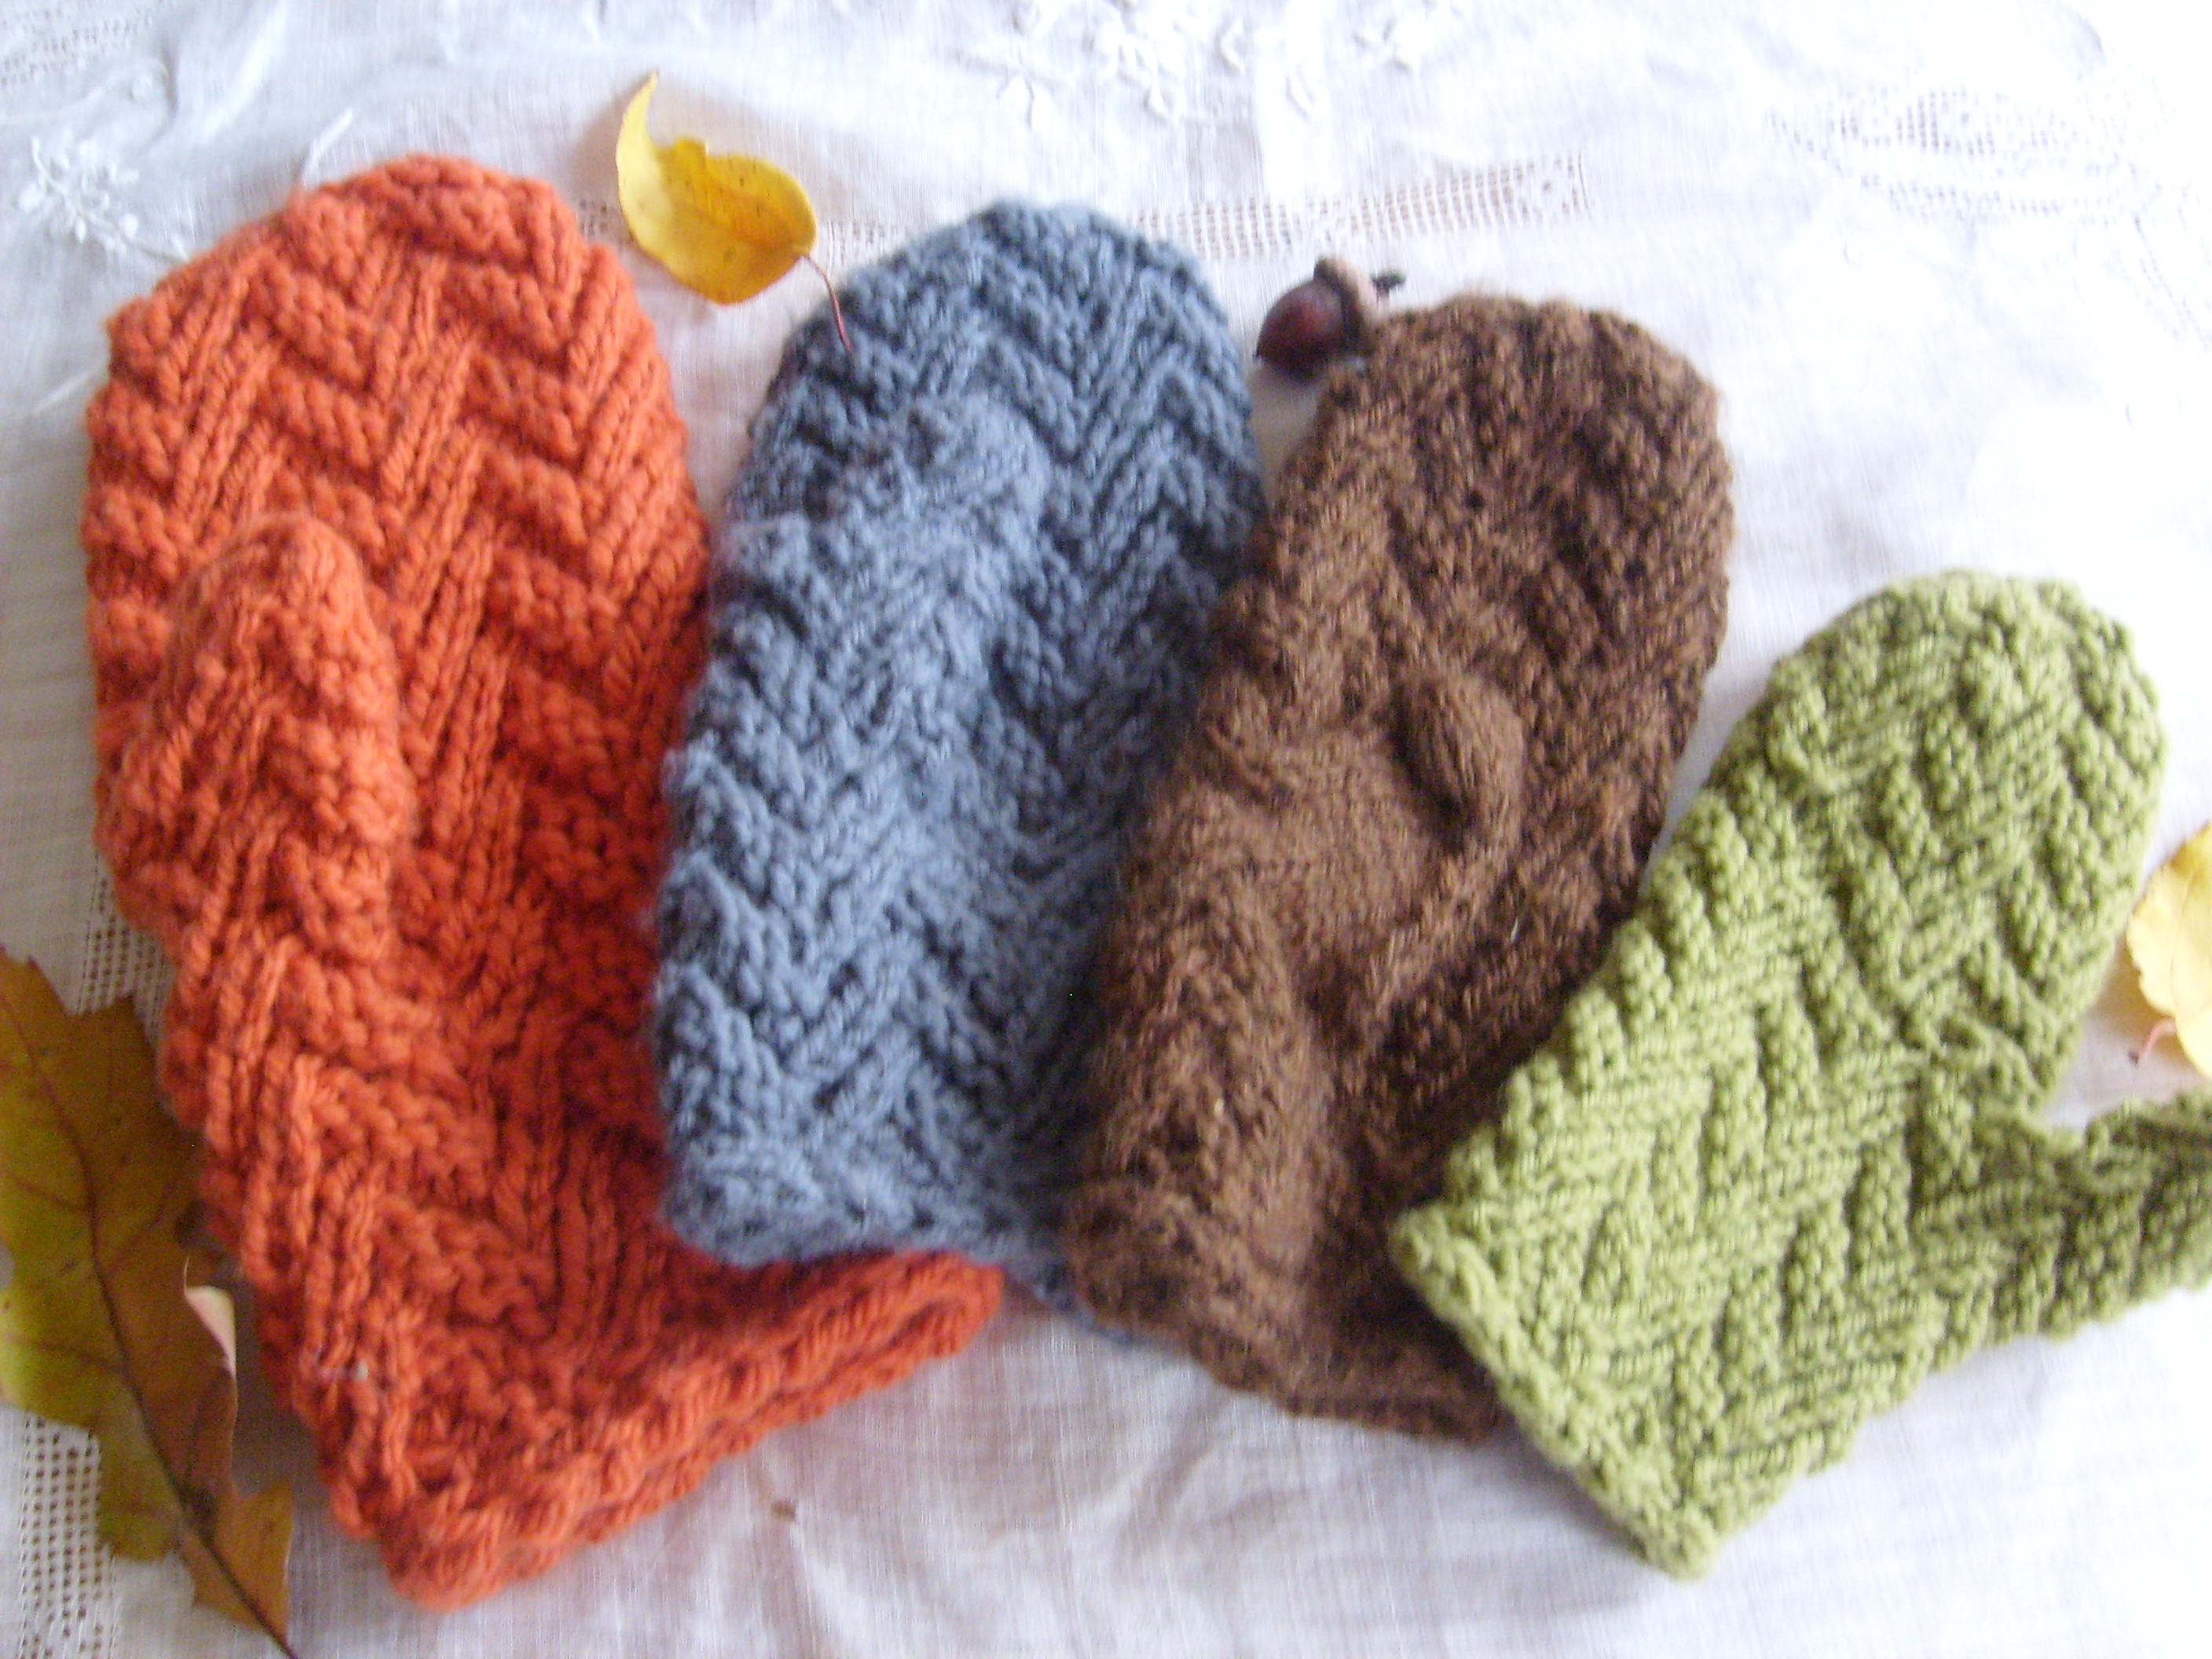 Download my Knitting or Crochet Patterns – Our Curious Home